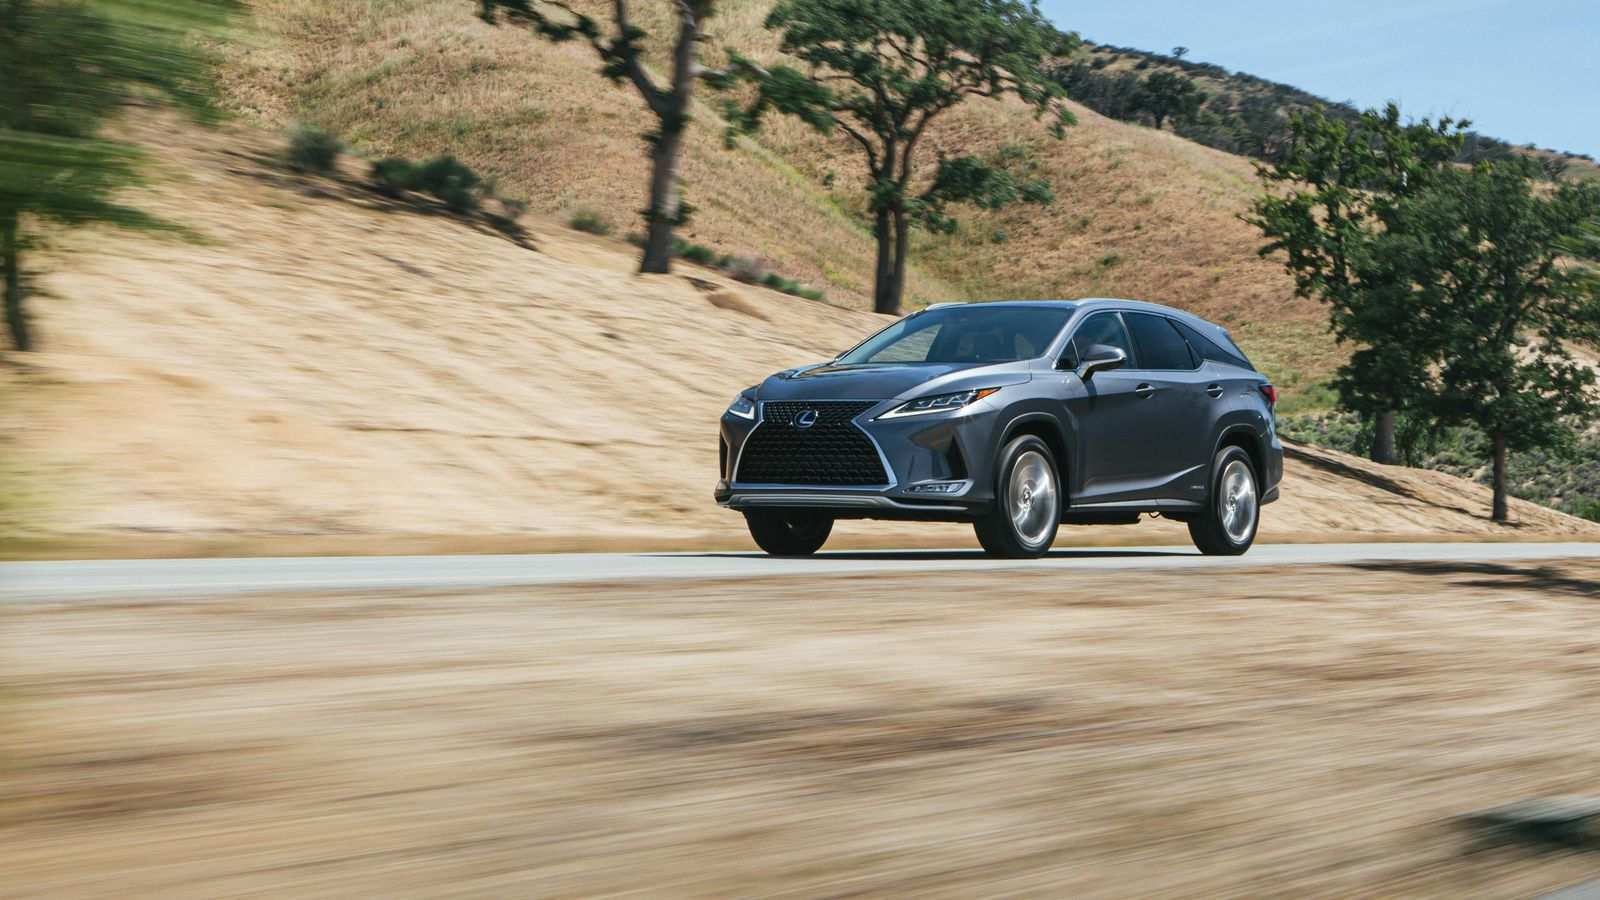 60 Great Lexus Rx Update 2020 Configurations with Lexus Rx Update 2020